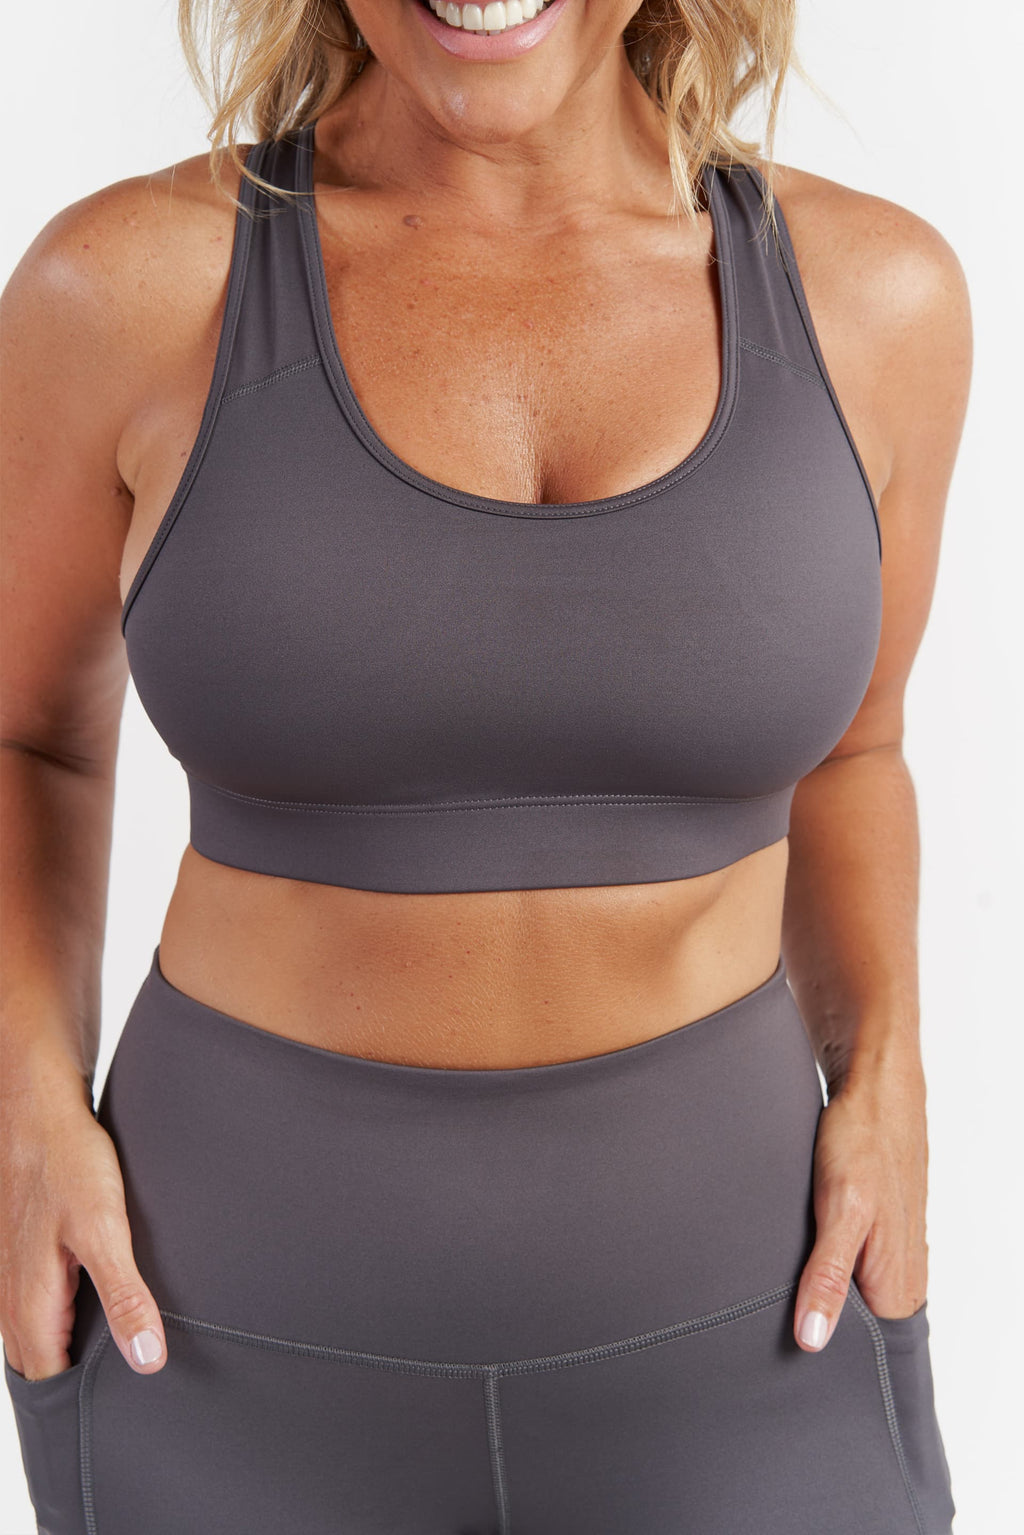 racerback-sports-crop-grey-large-front